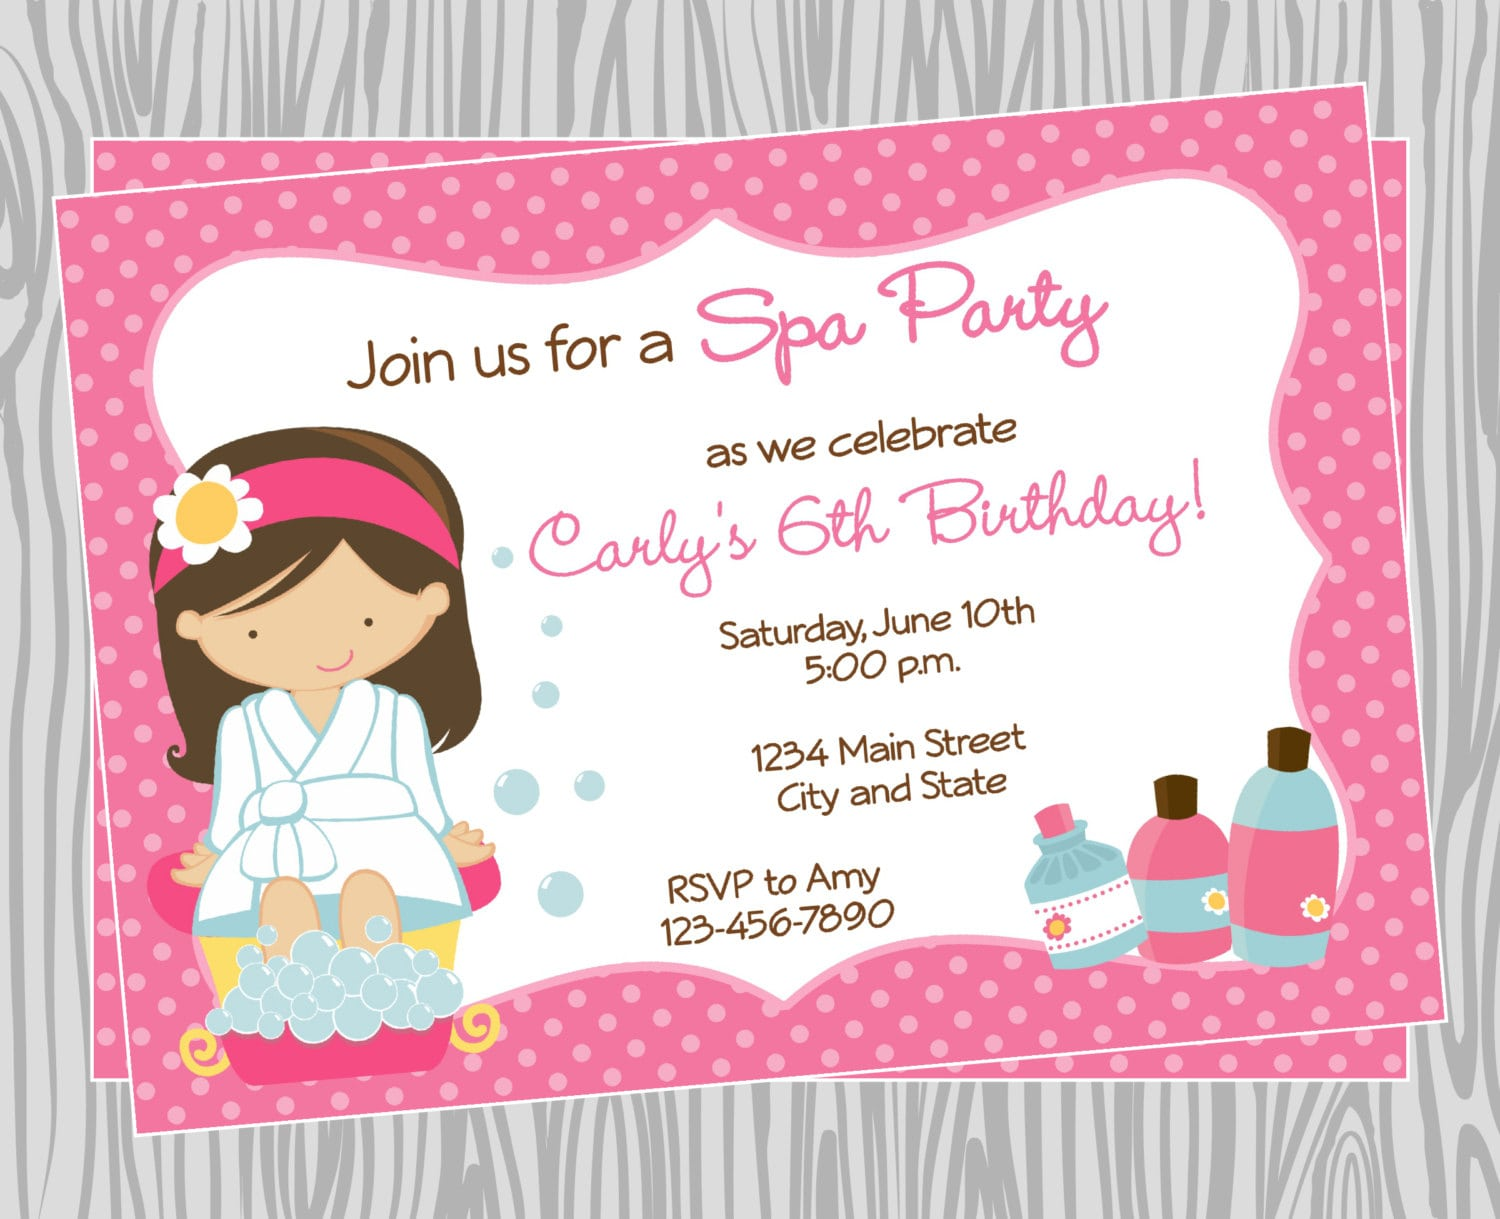 Diy Girl Spa Birthday Party Invitation 4 Coordinating Items